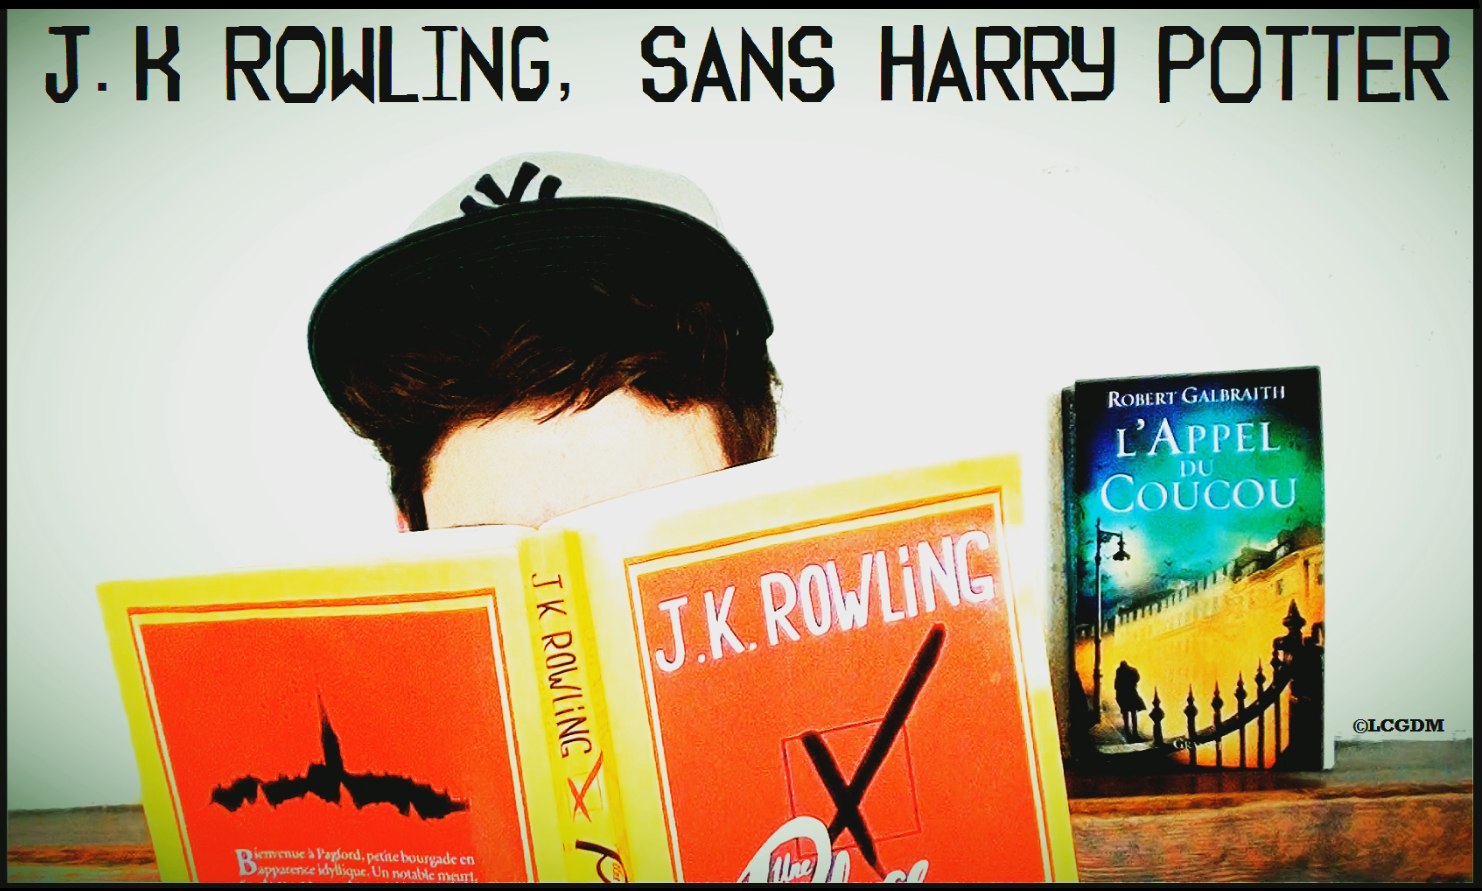 J. K Rowling, sans Harry Potter